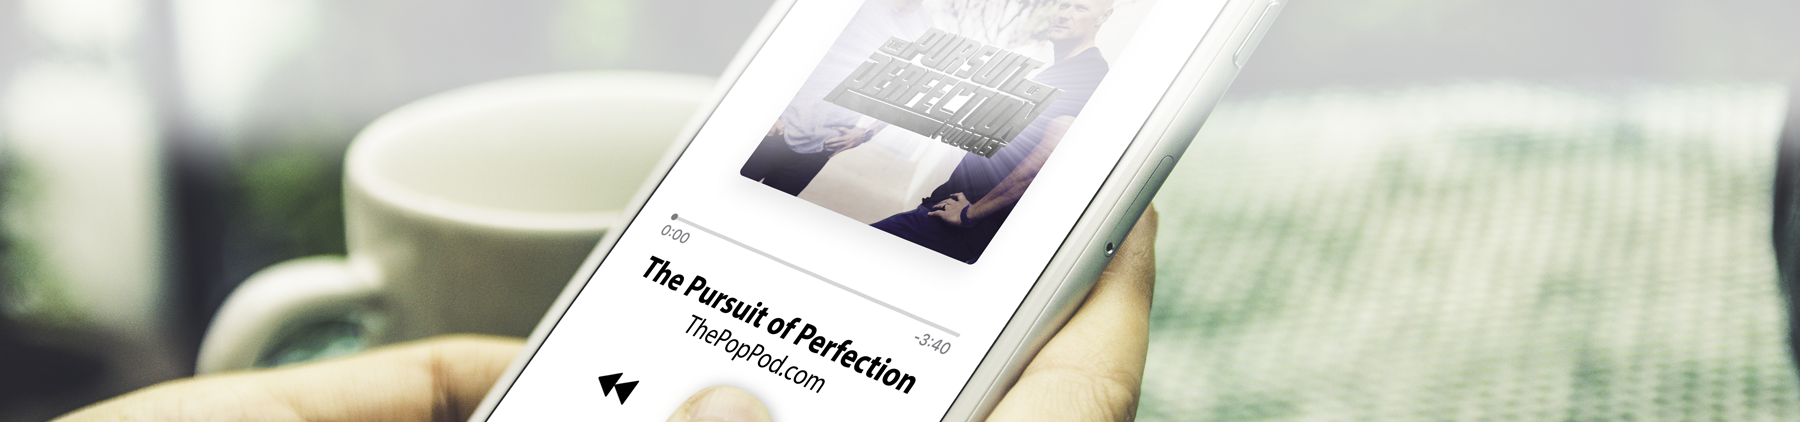 The Pursuit of Perfection Podcast Tim Dixon China McCarney Episodes